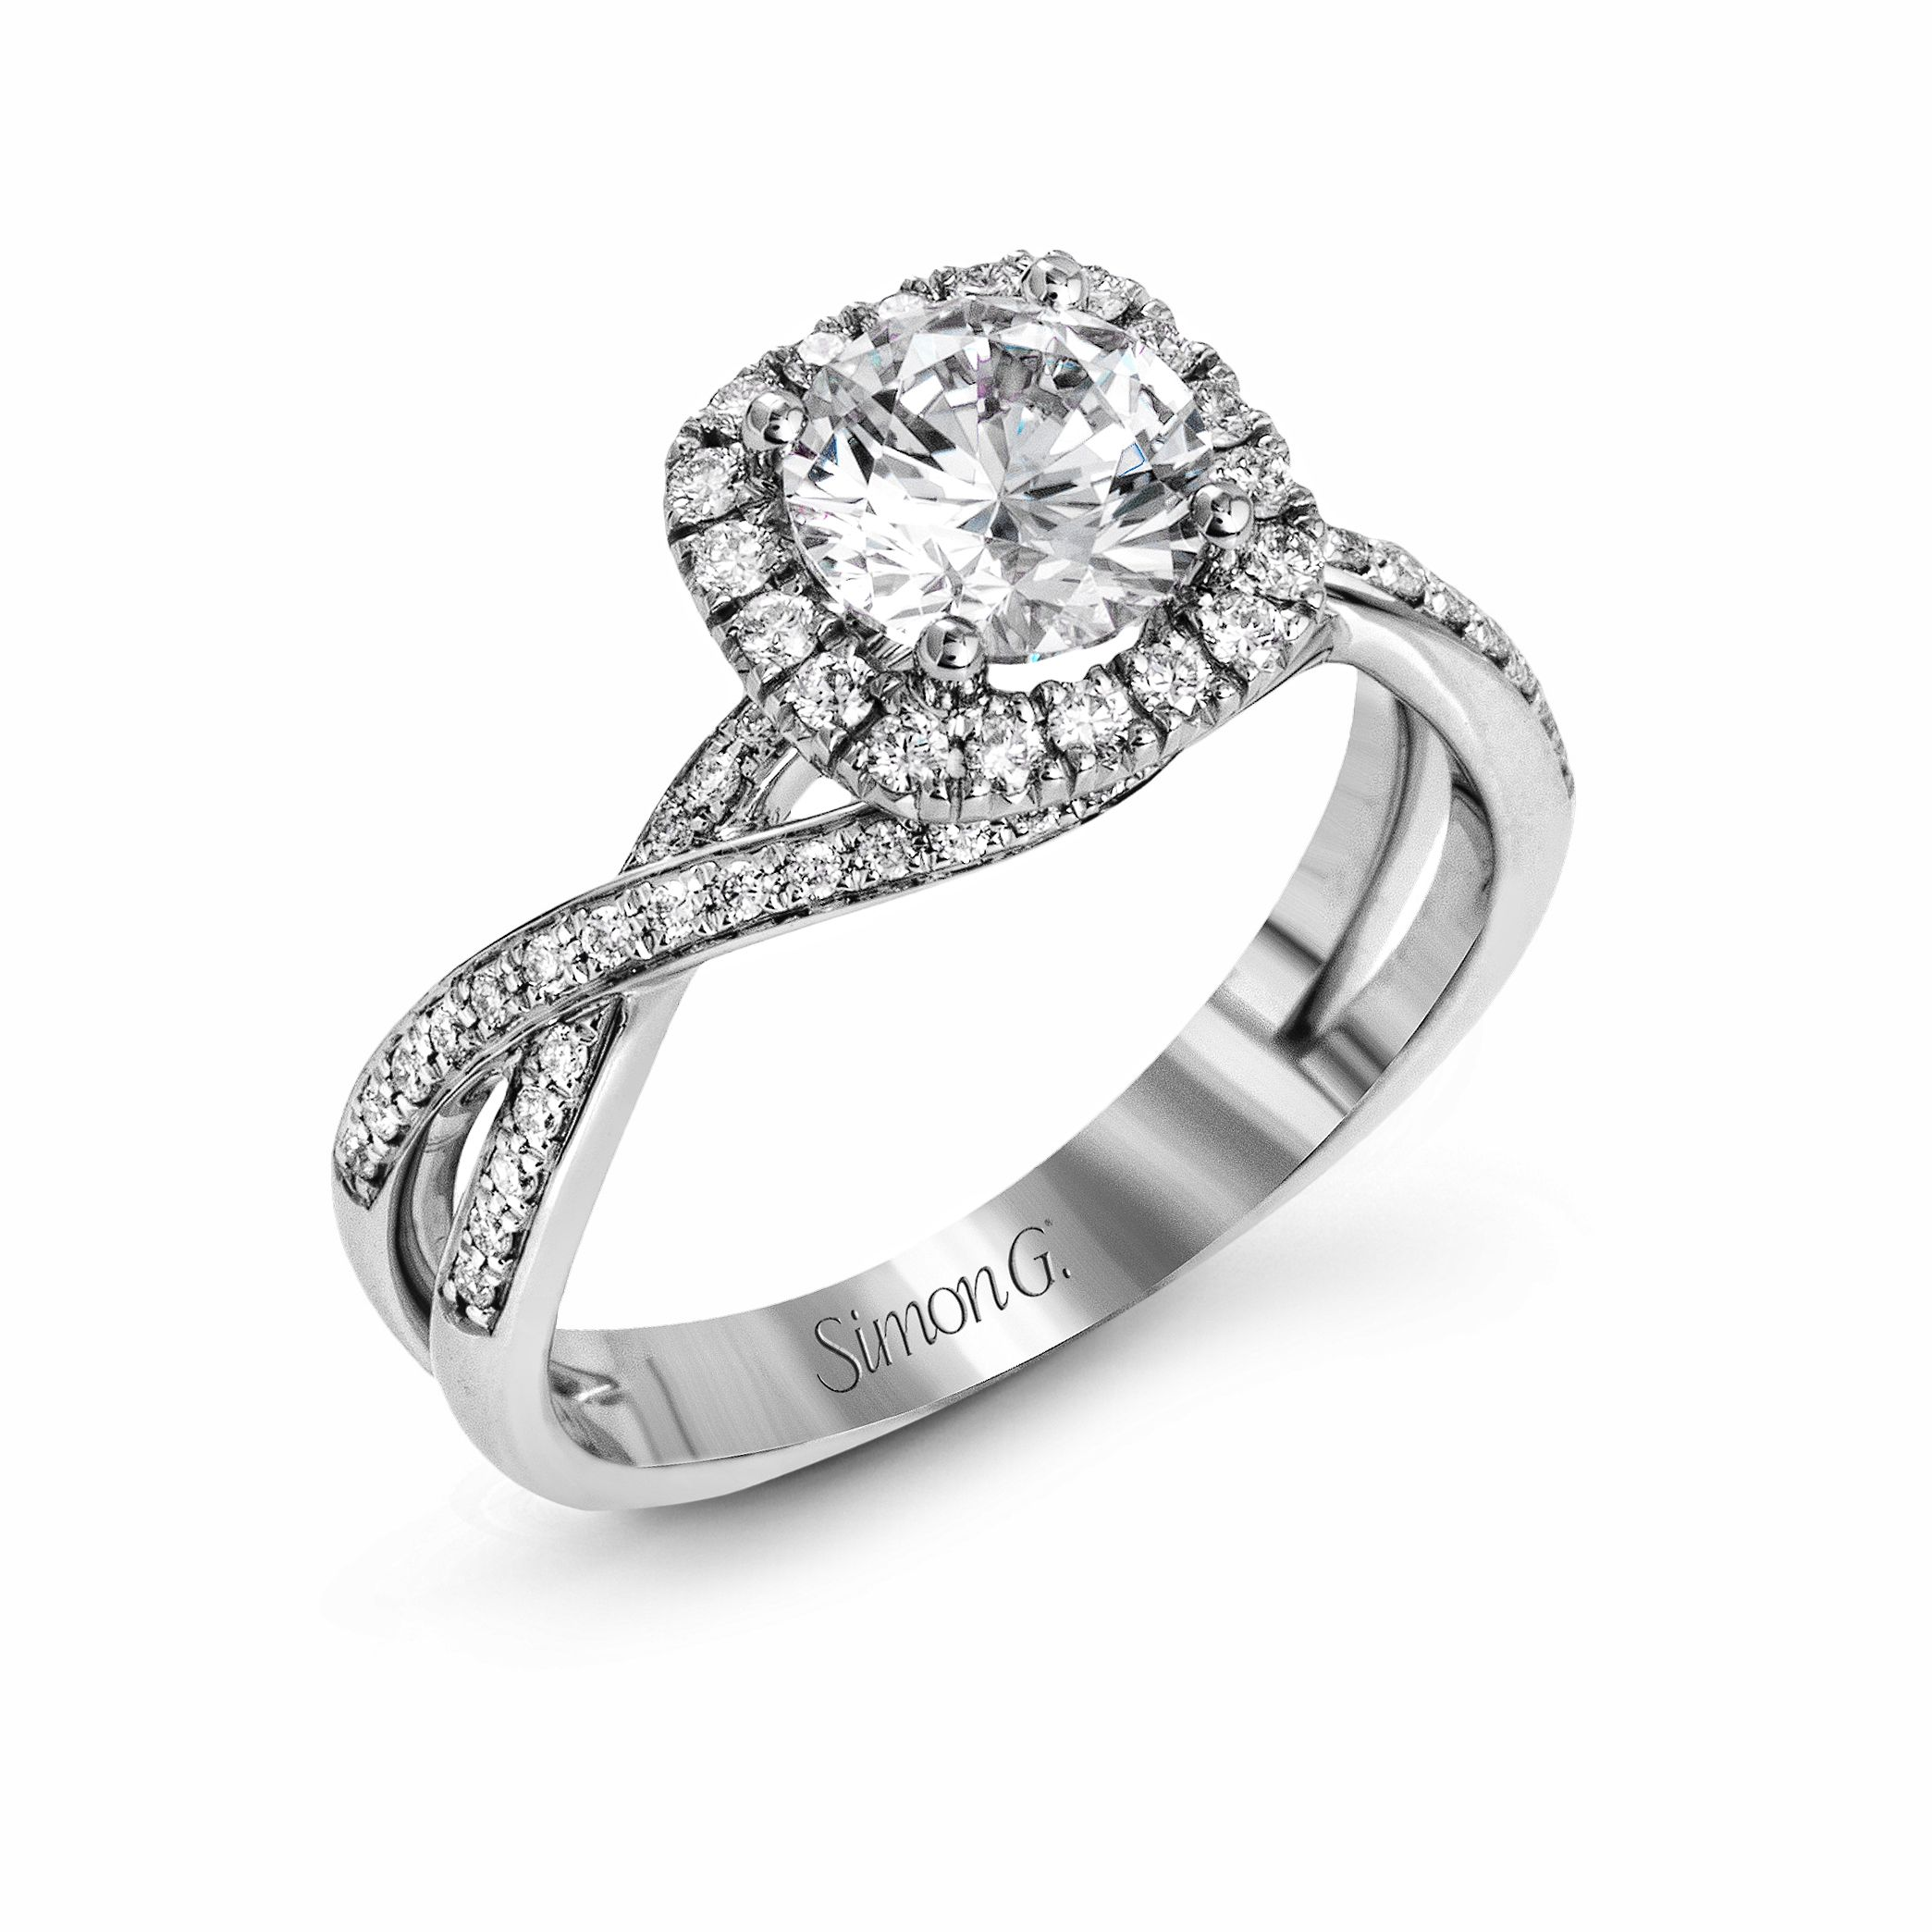 simon jewelers bc engagement g clark rings